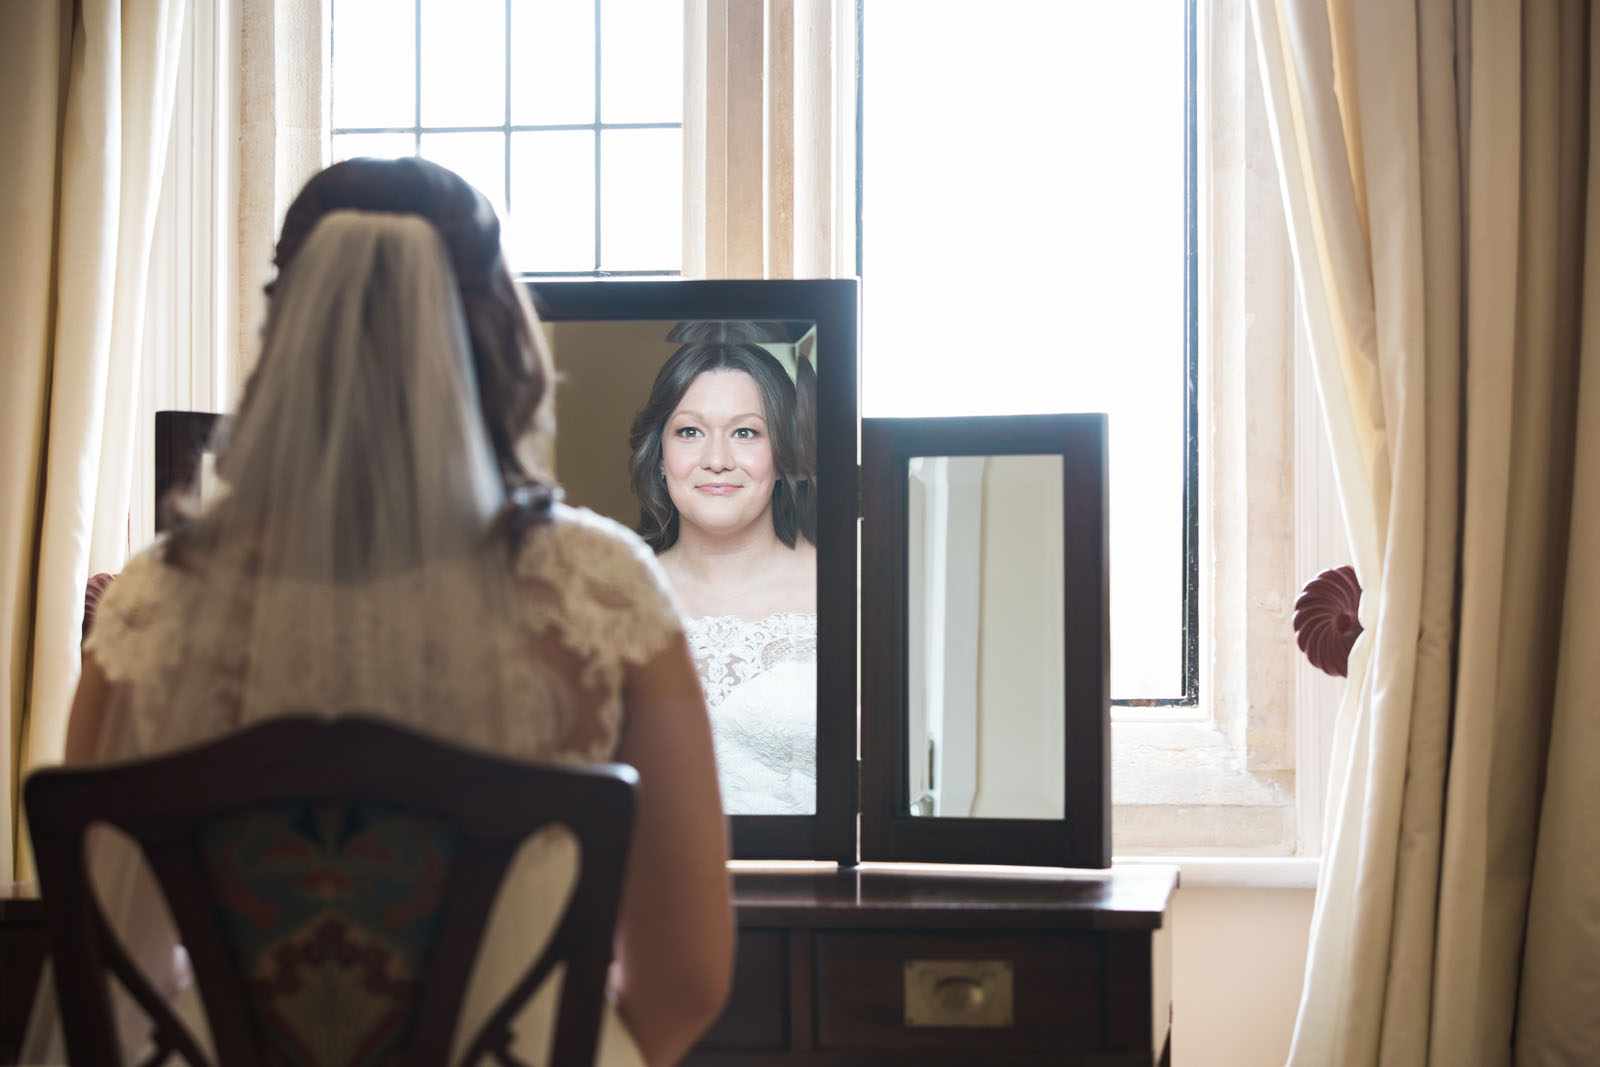 Notley Abbey Wedding - bride mirror shot